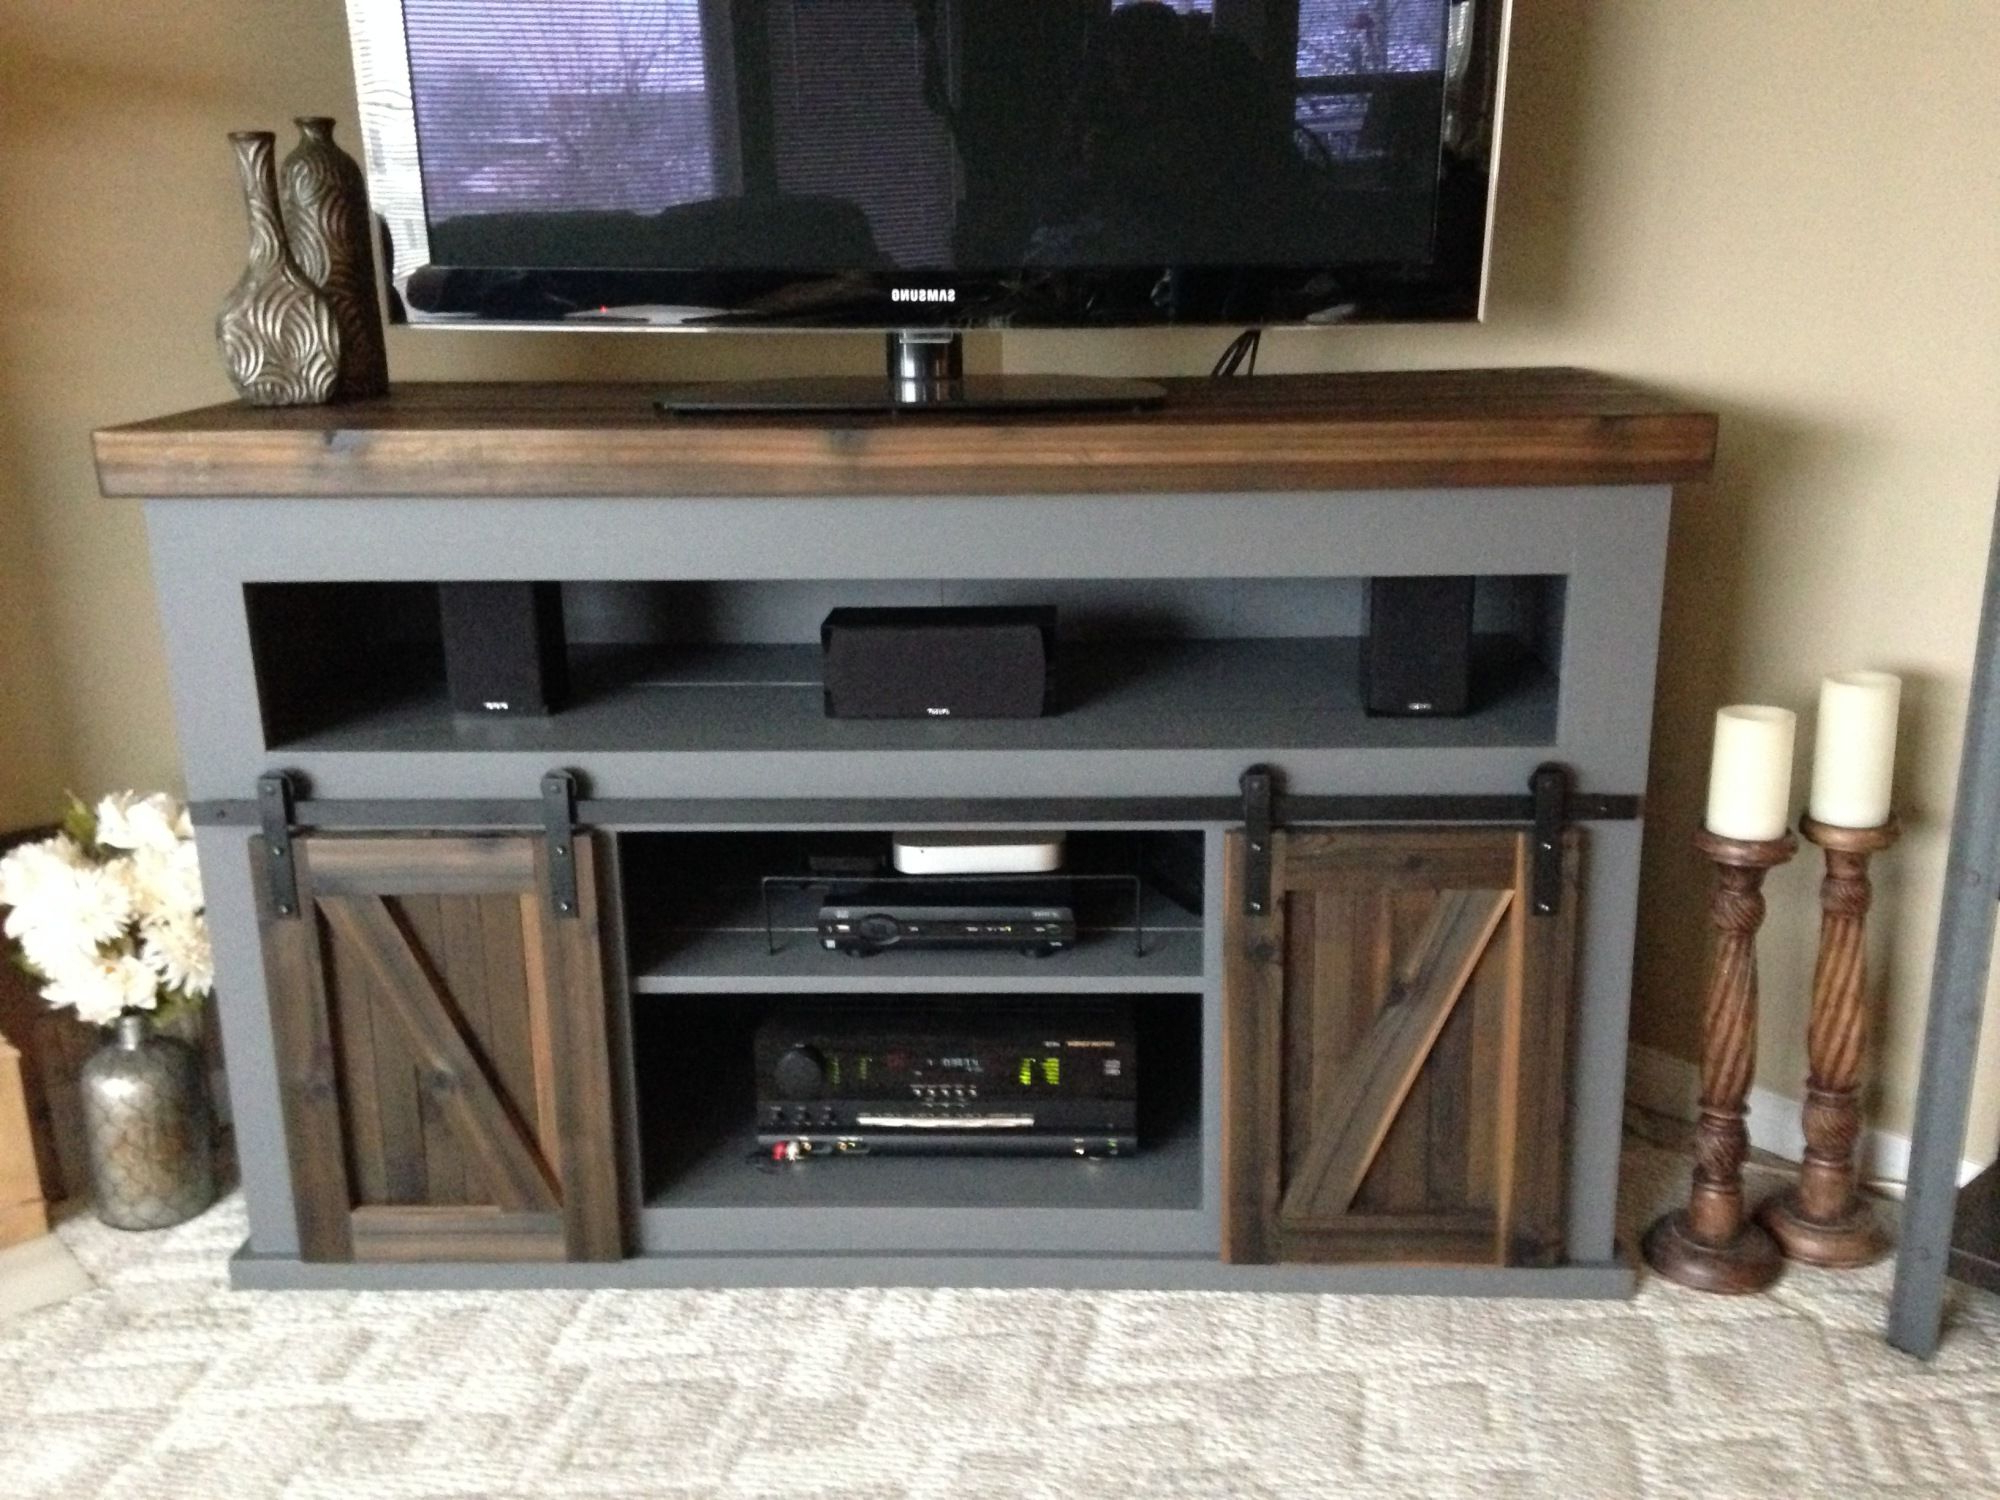 19 Amazing Diy Tv Stand Ideas You Can Build Right Now (Gallery 15 of 20)